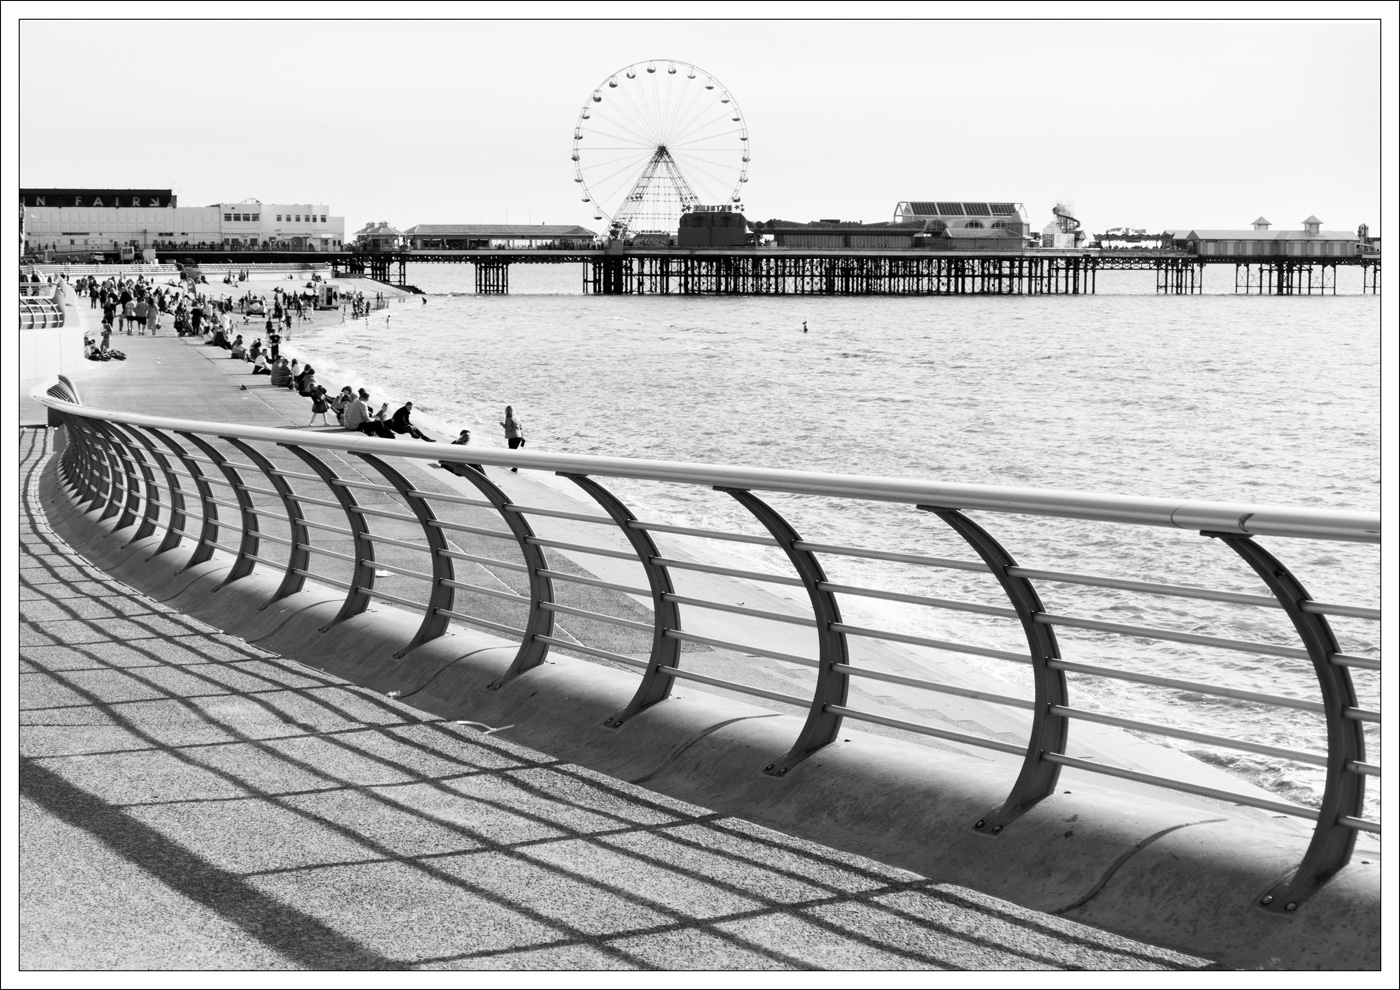 Advanced Monochrome Prints - HC - By The Sea by Lawrence Graham (December 2015)